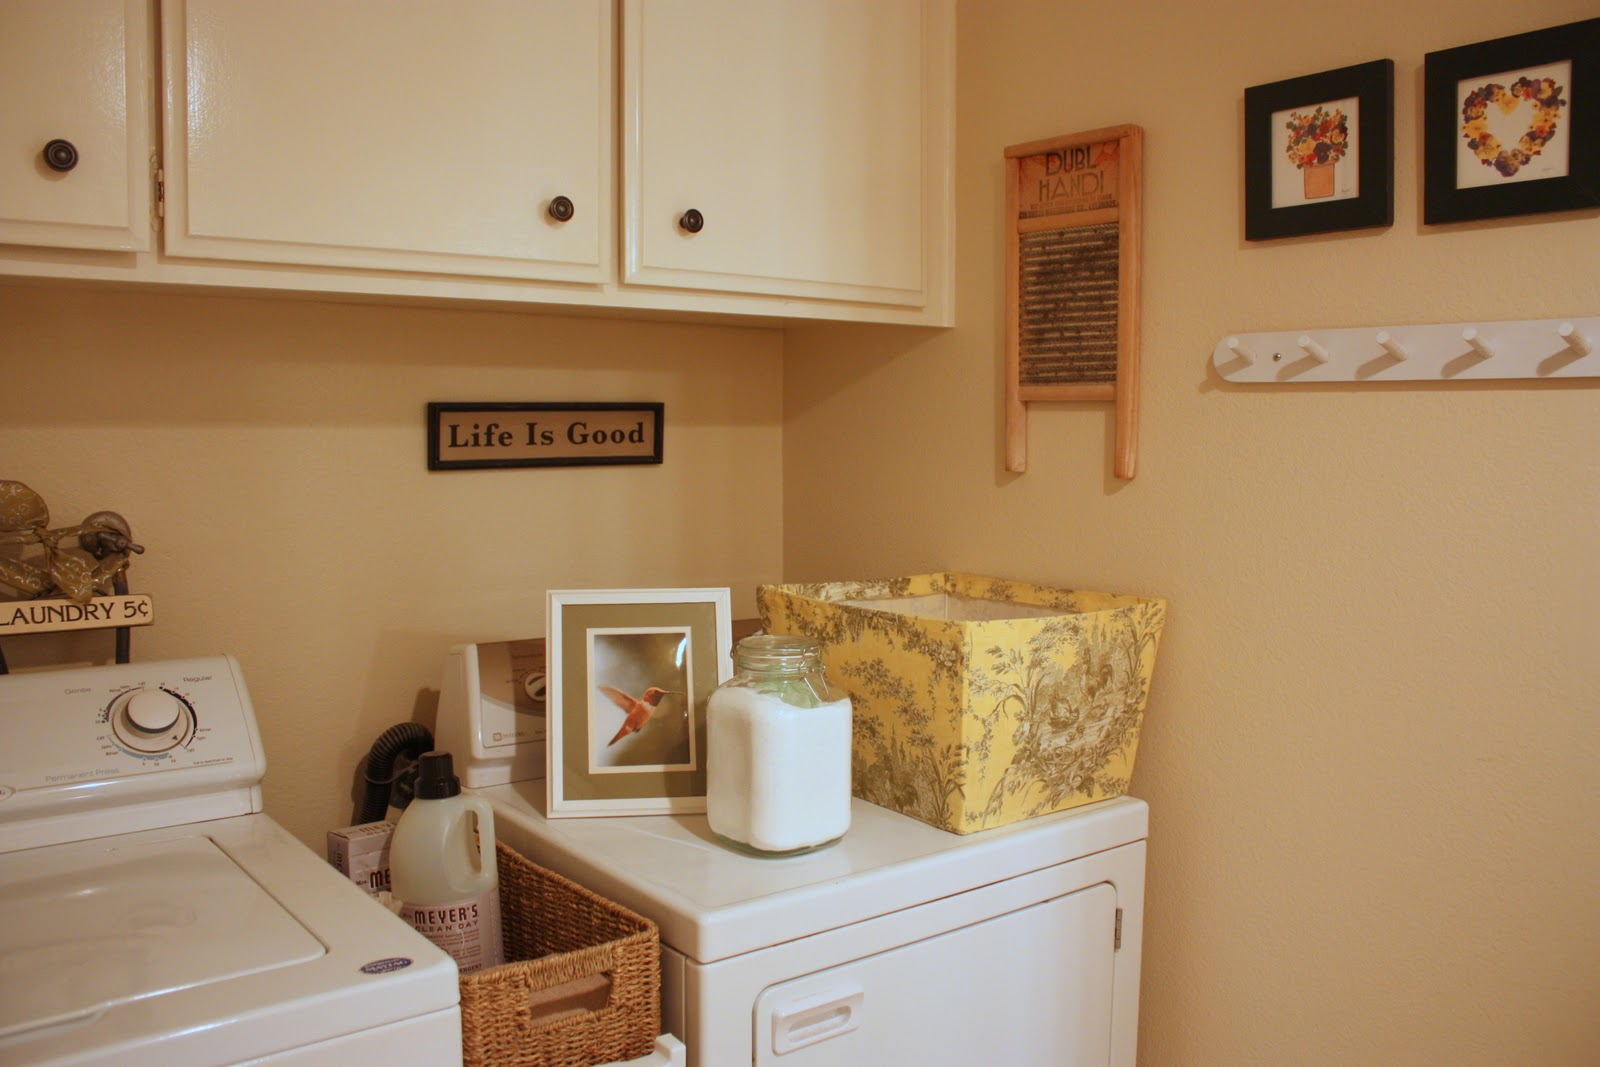 BALANCED STYLE: My Humble Laundry Room